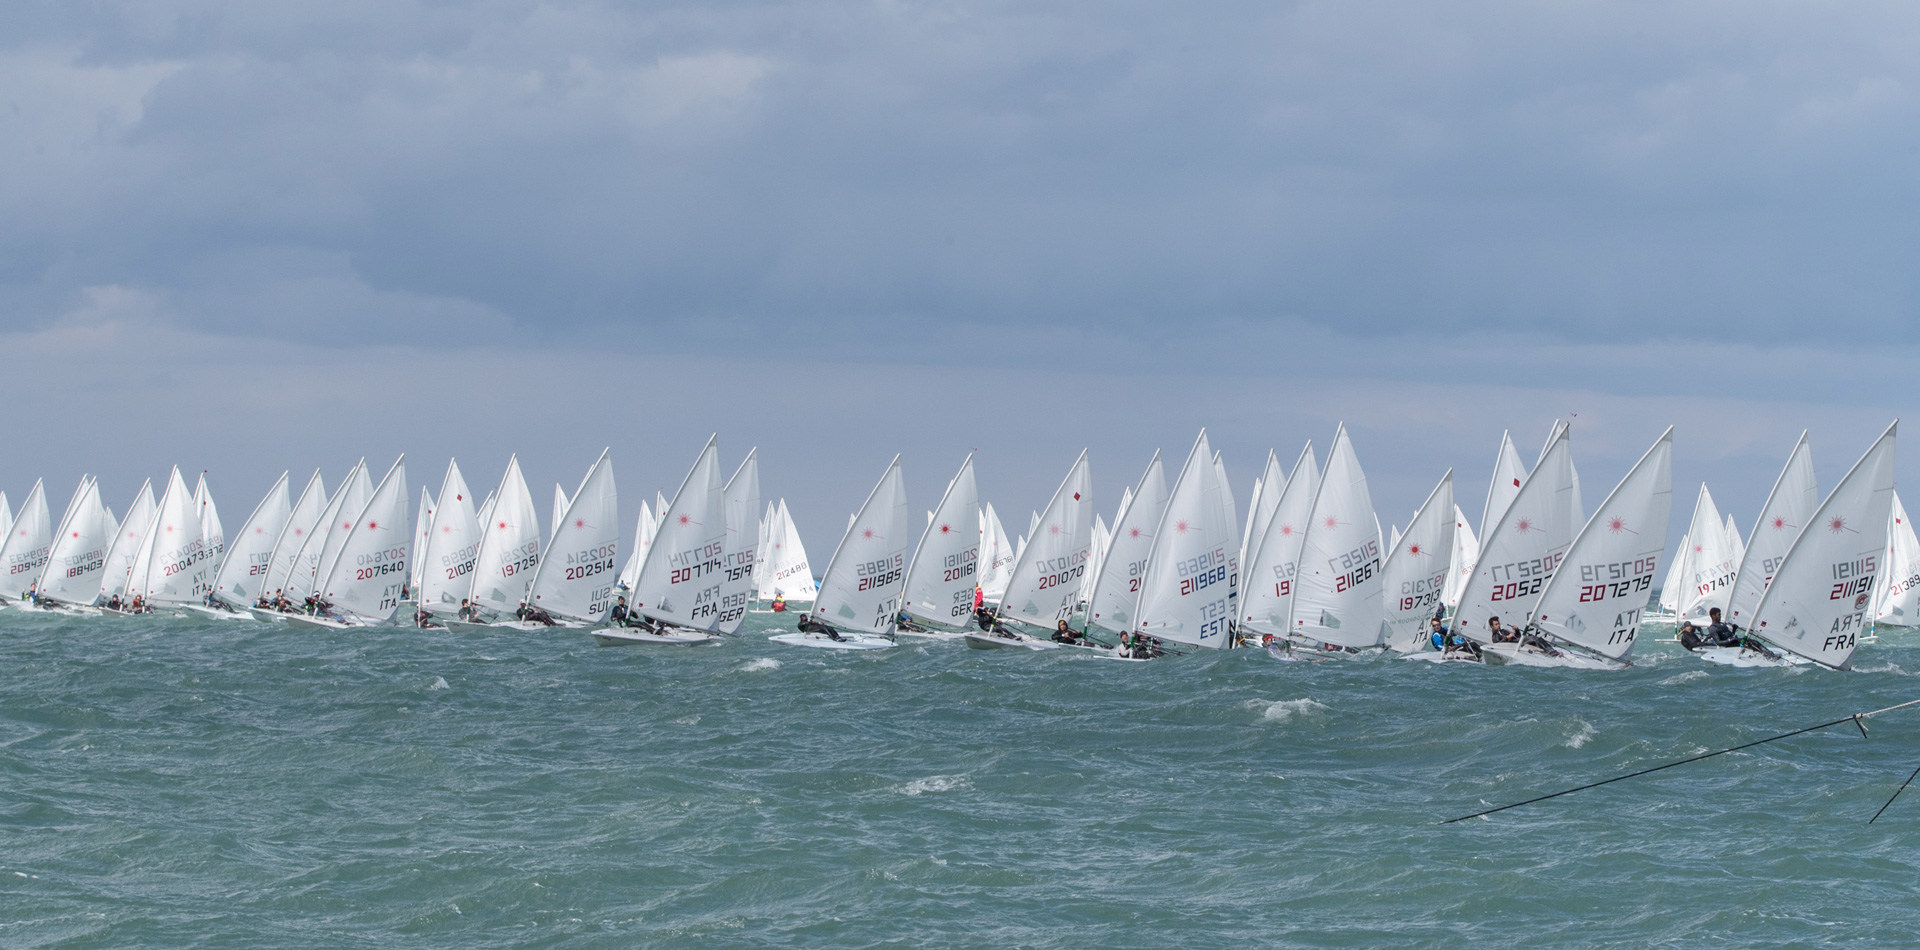 kick off the Laser Europa Cup 2019